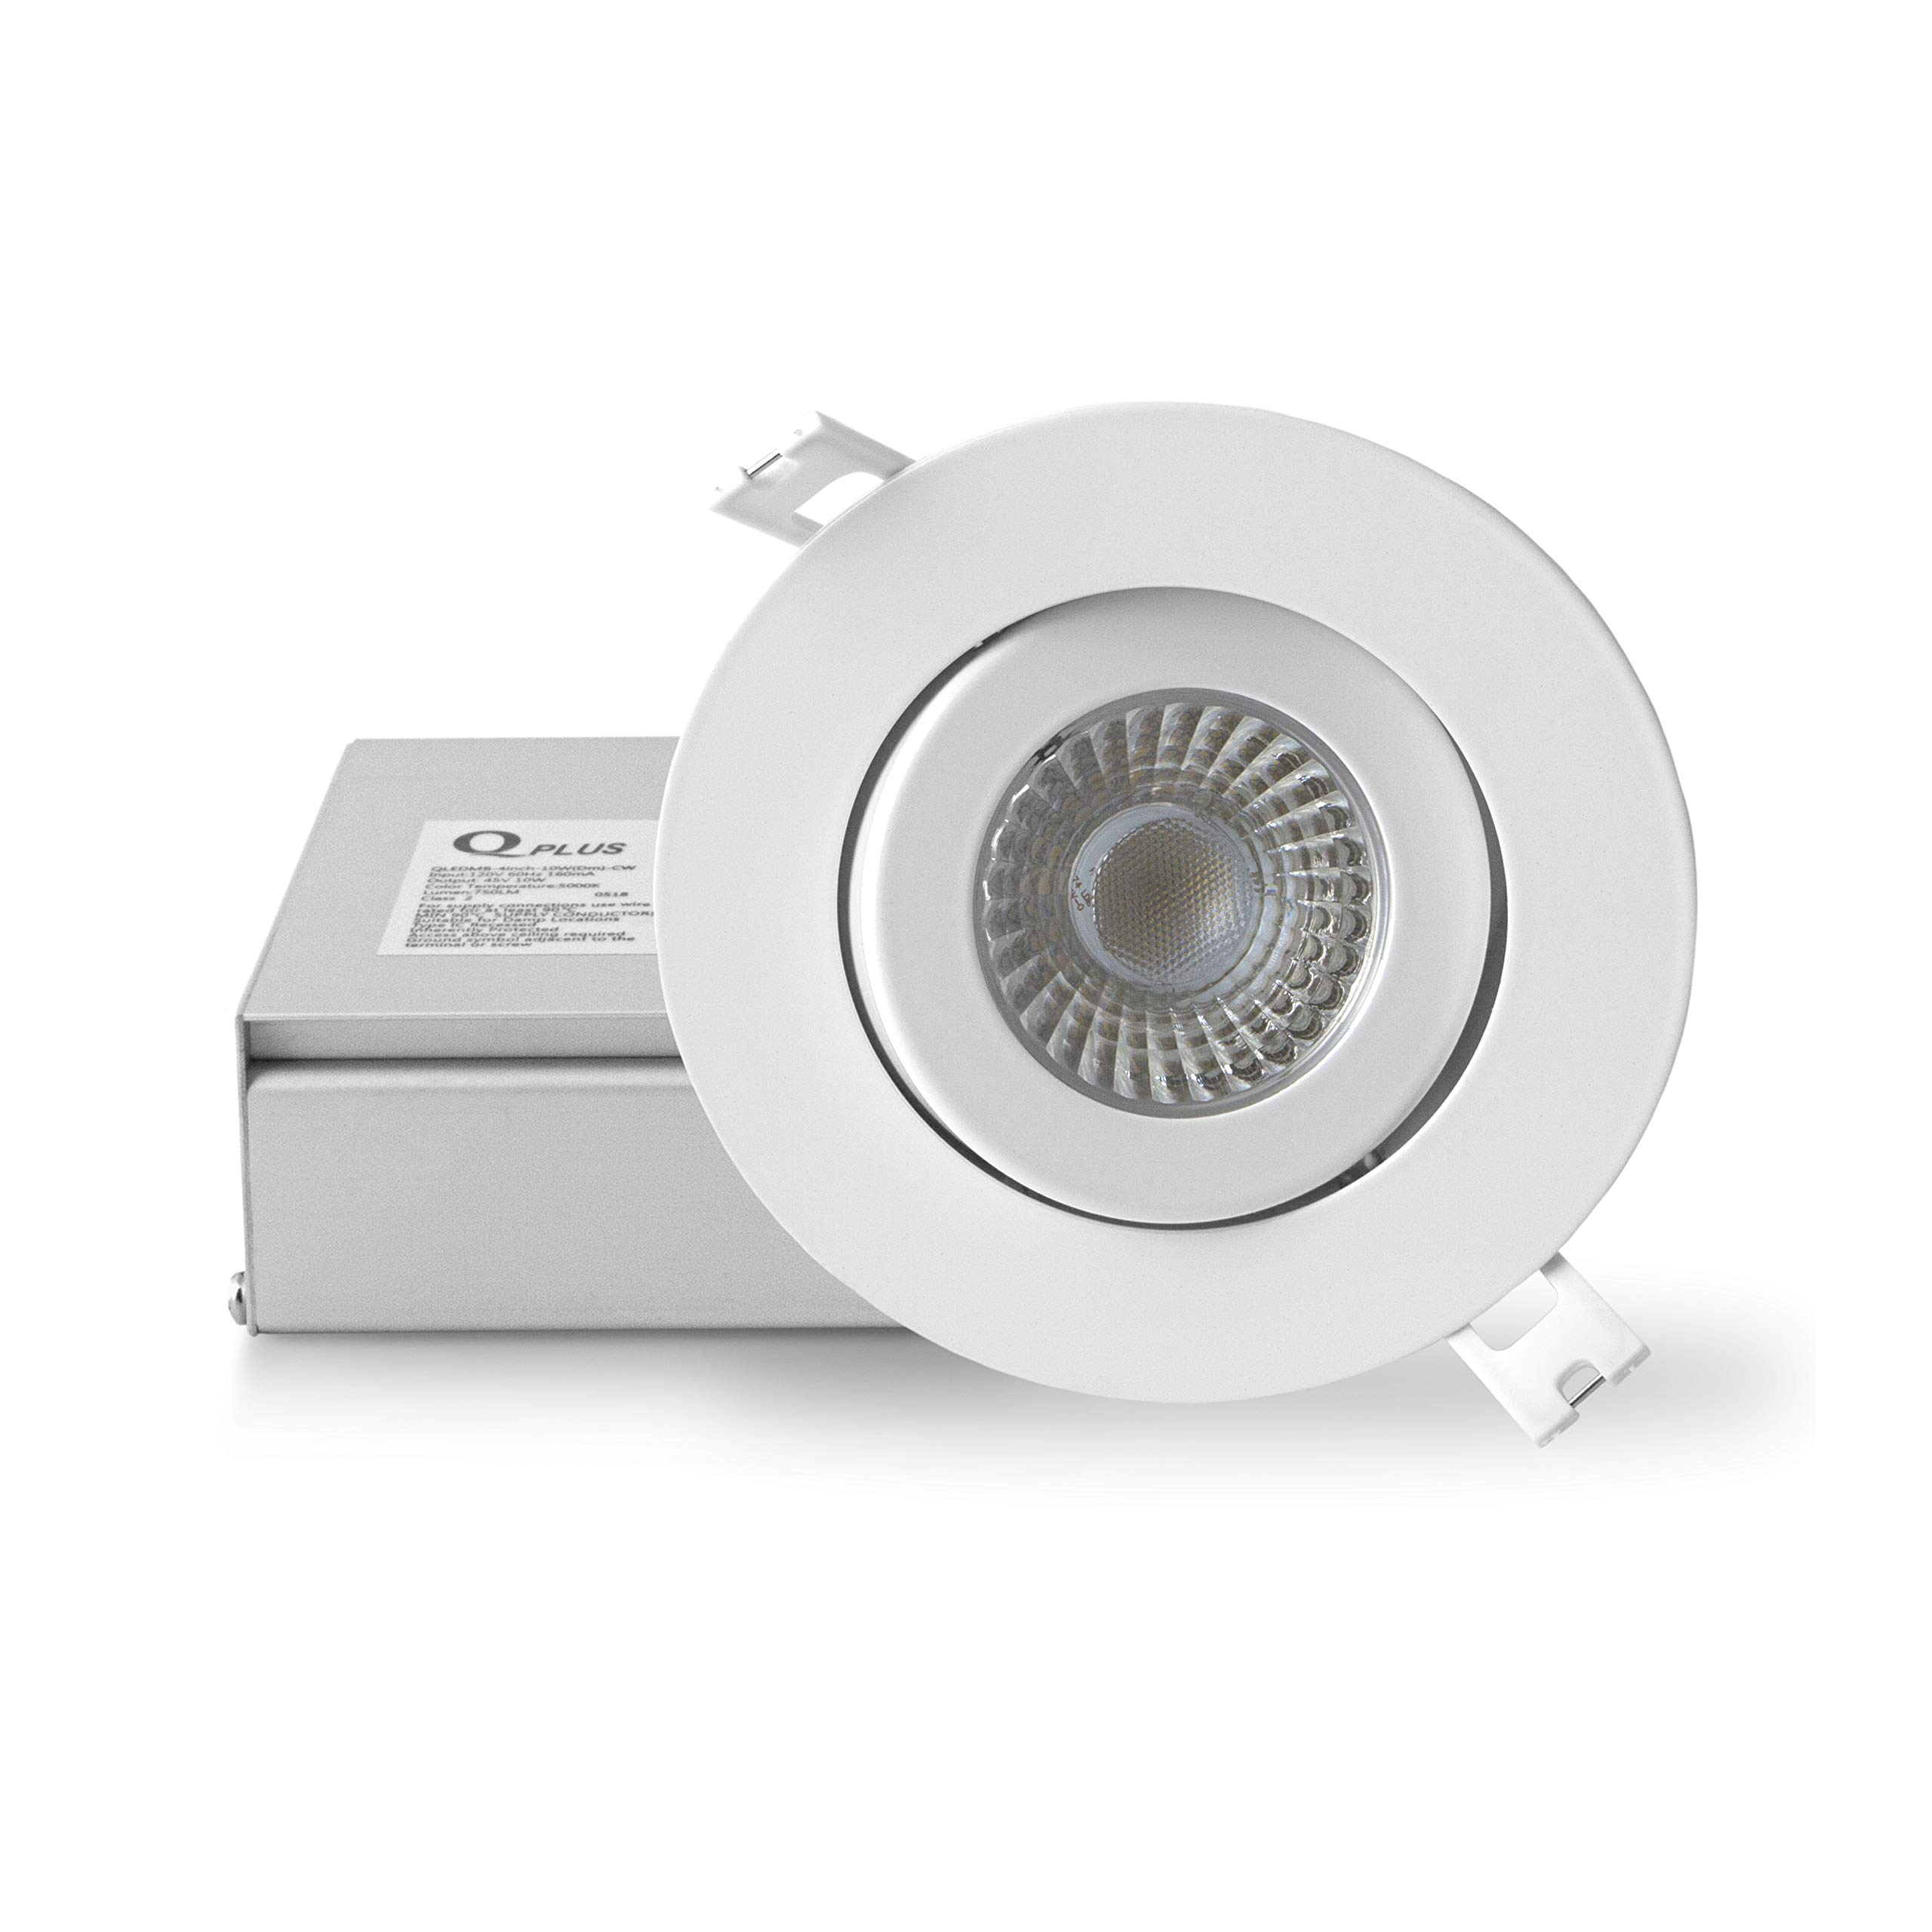 qplus 4 inch airtight eyeball gimbal led recessed lighting with junction box canless downlight 10 watts 750lm dimmable energy star and cetlus